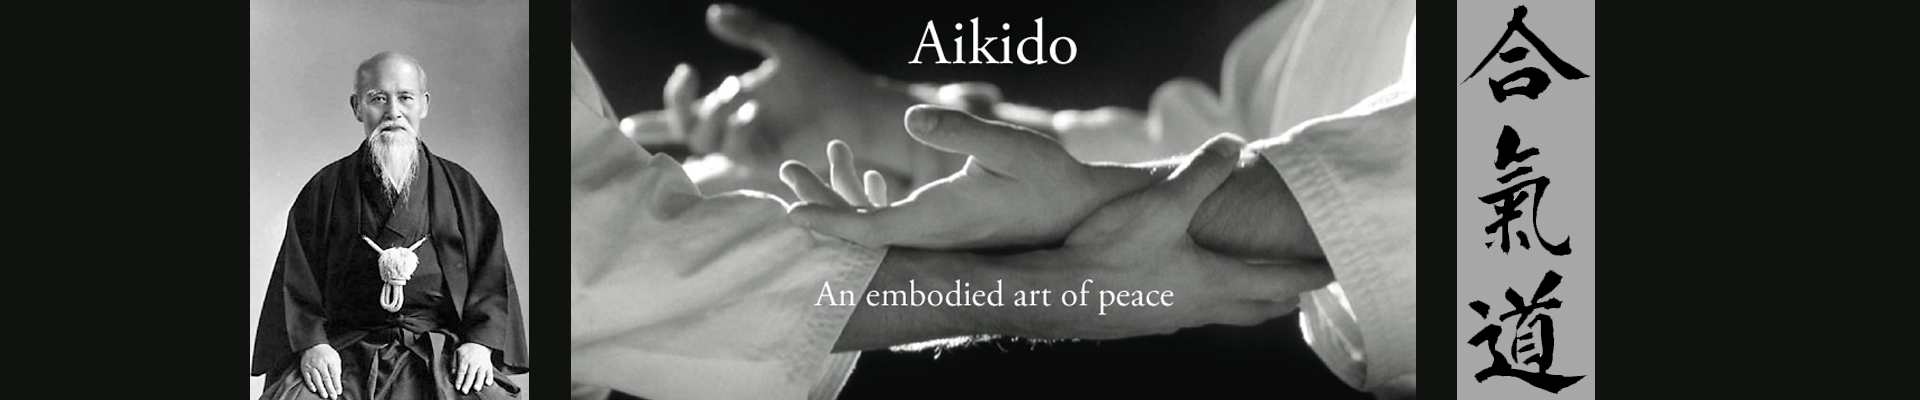 new aikido banner